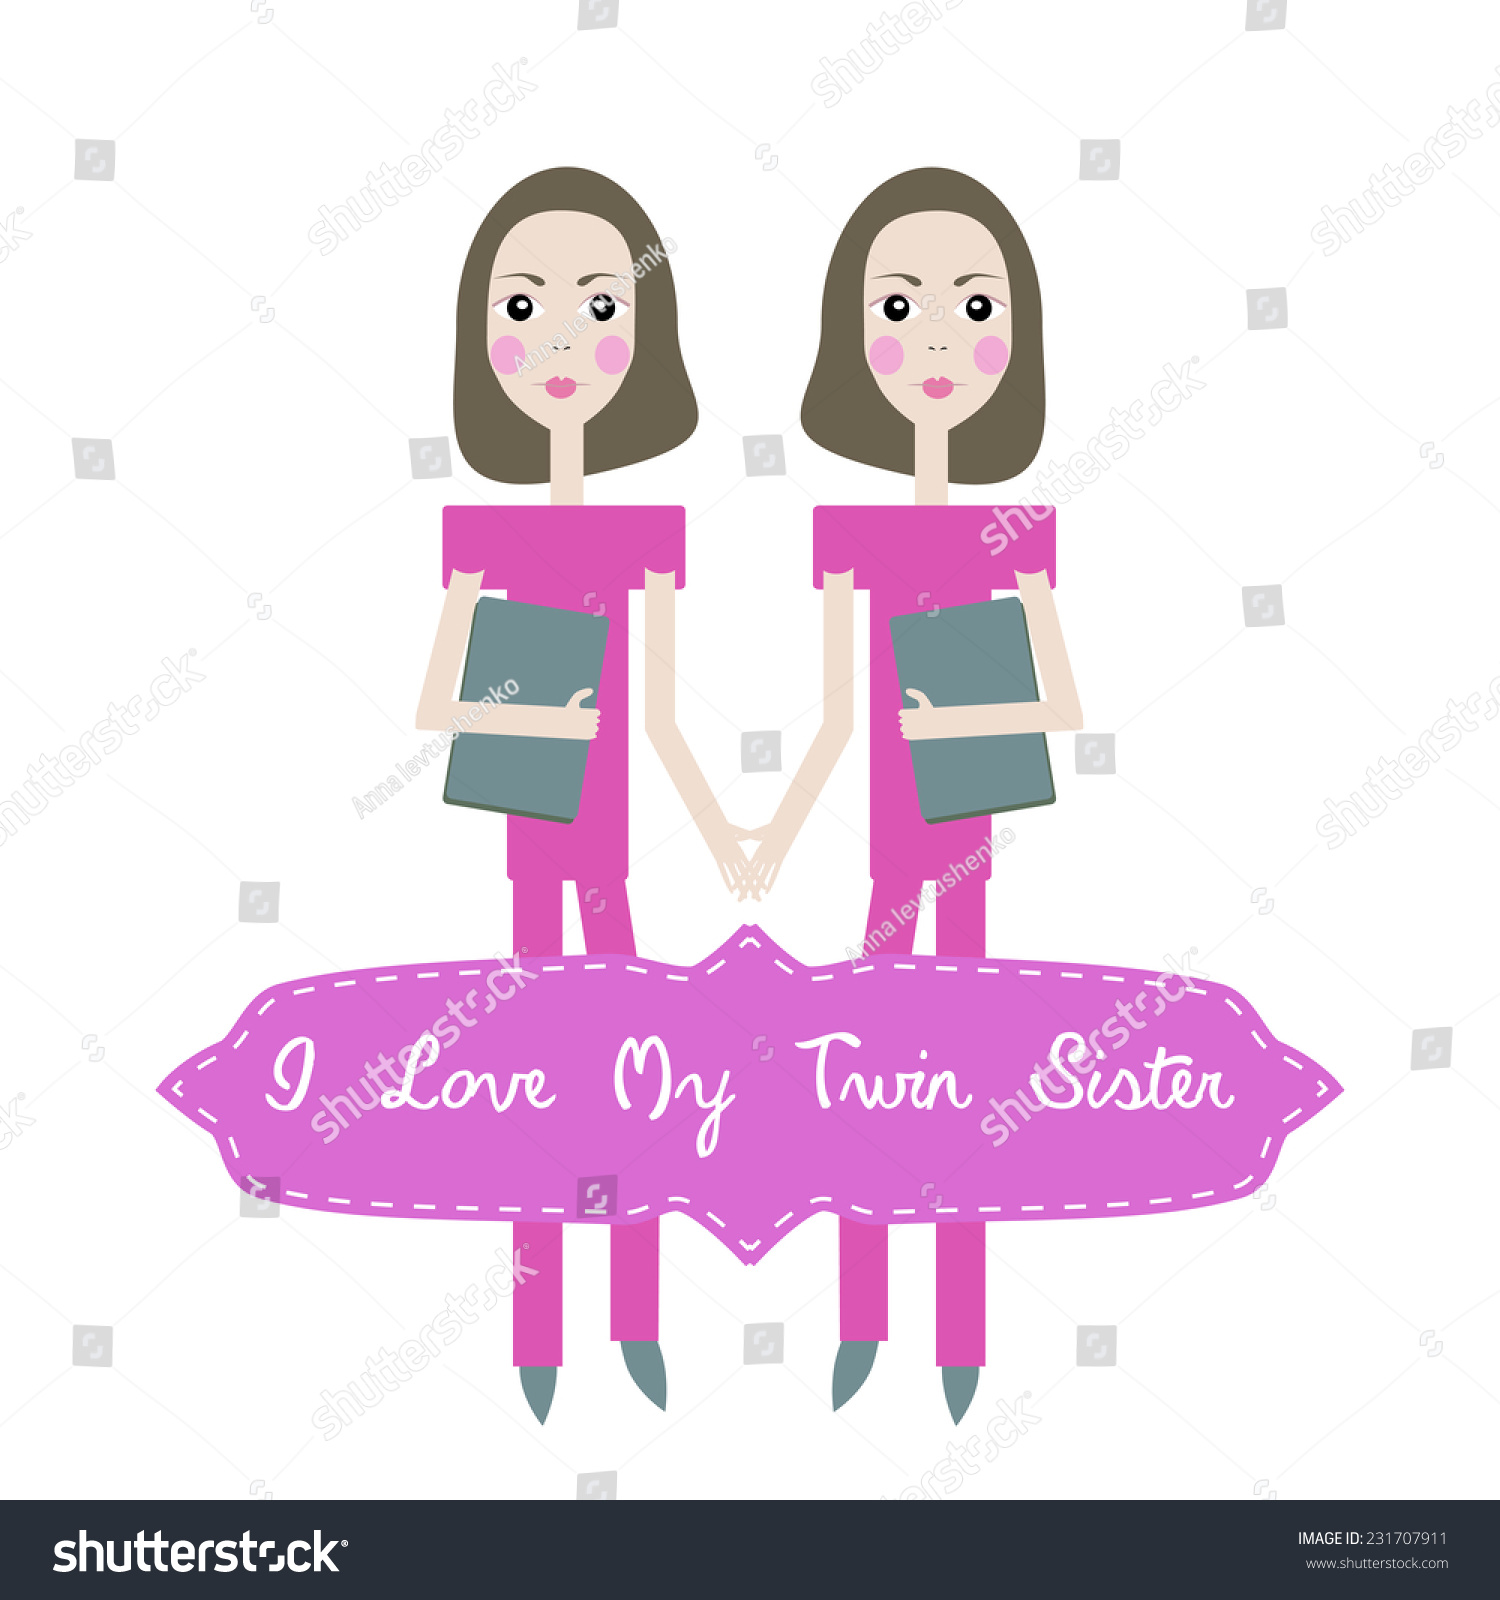 Vector Happy Birthday Card Invitation Background For Twins With Text I Love My Twin